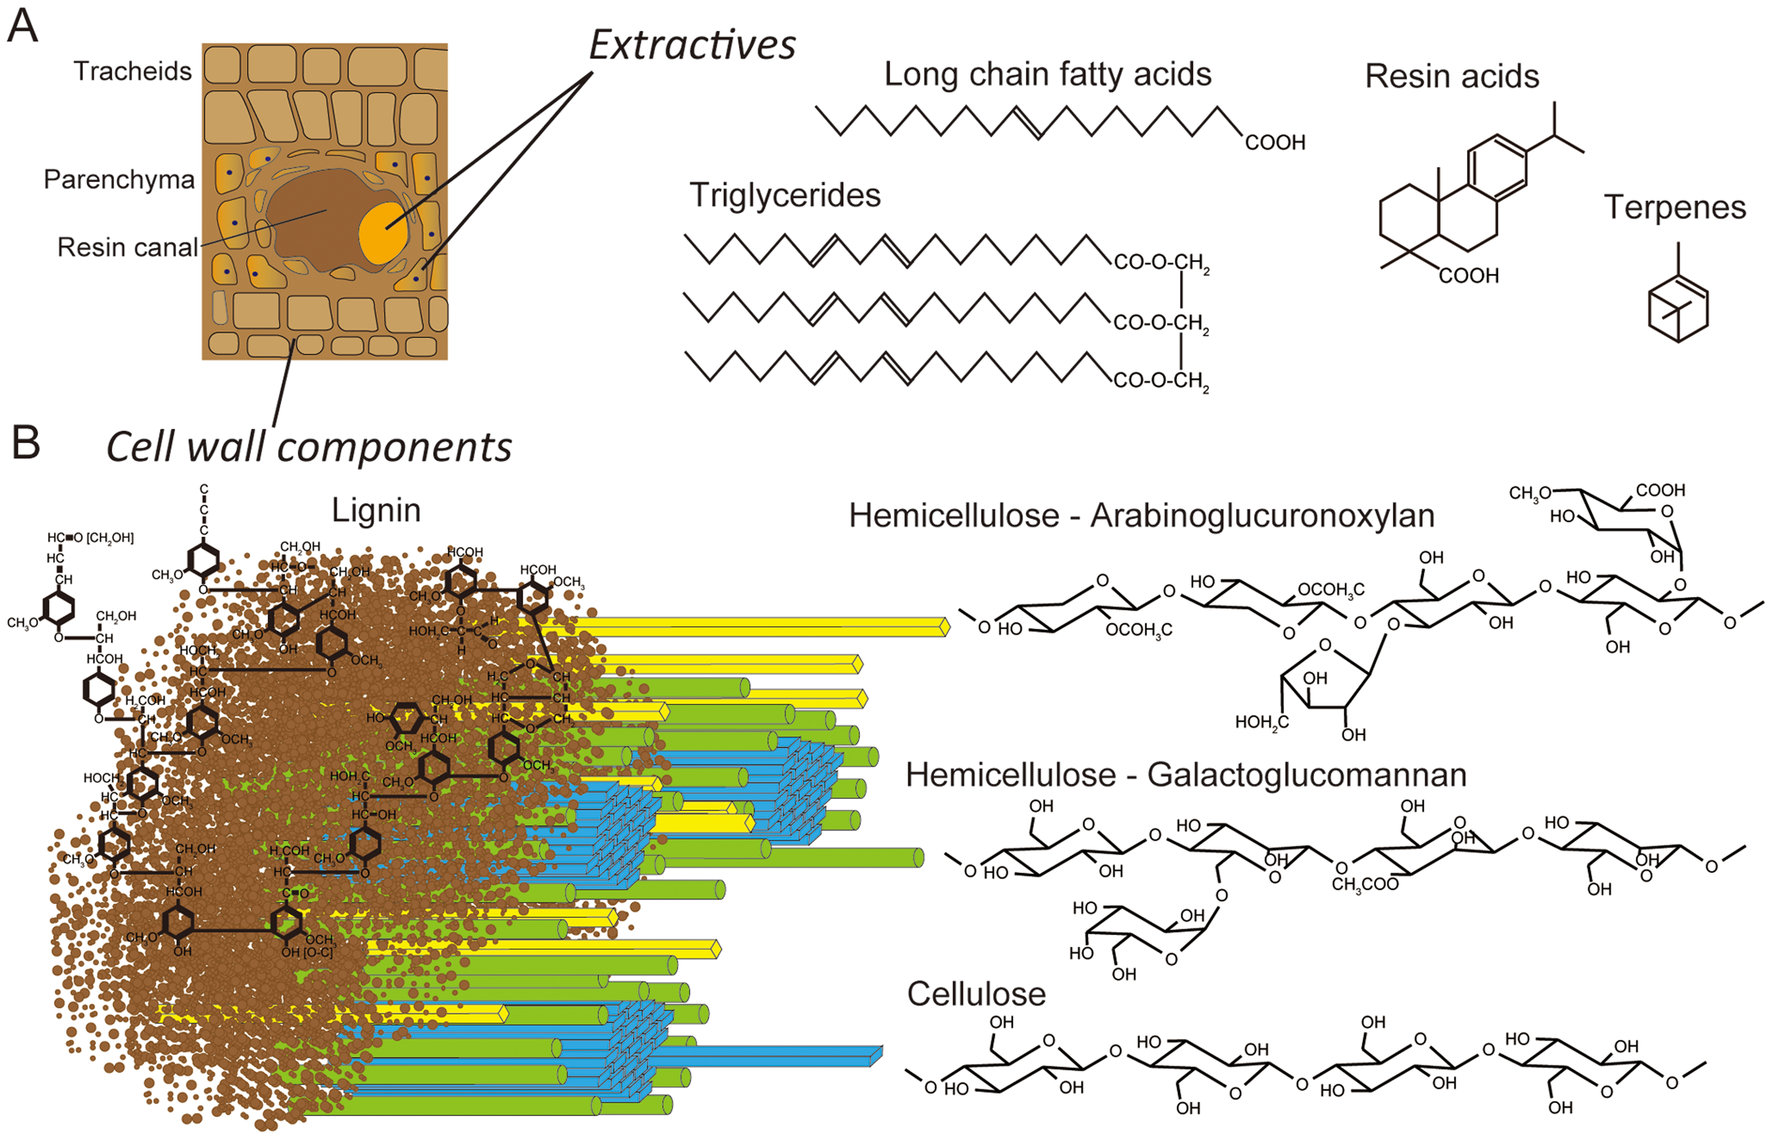 Schematic representations of lignocellulose components in cell walls of pine wood.